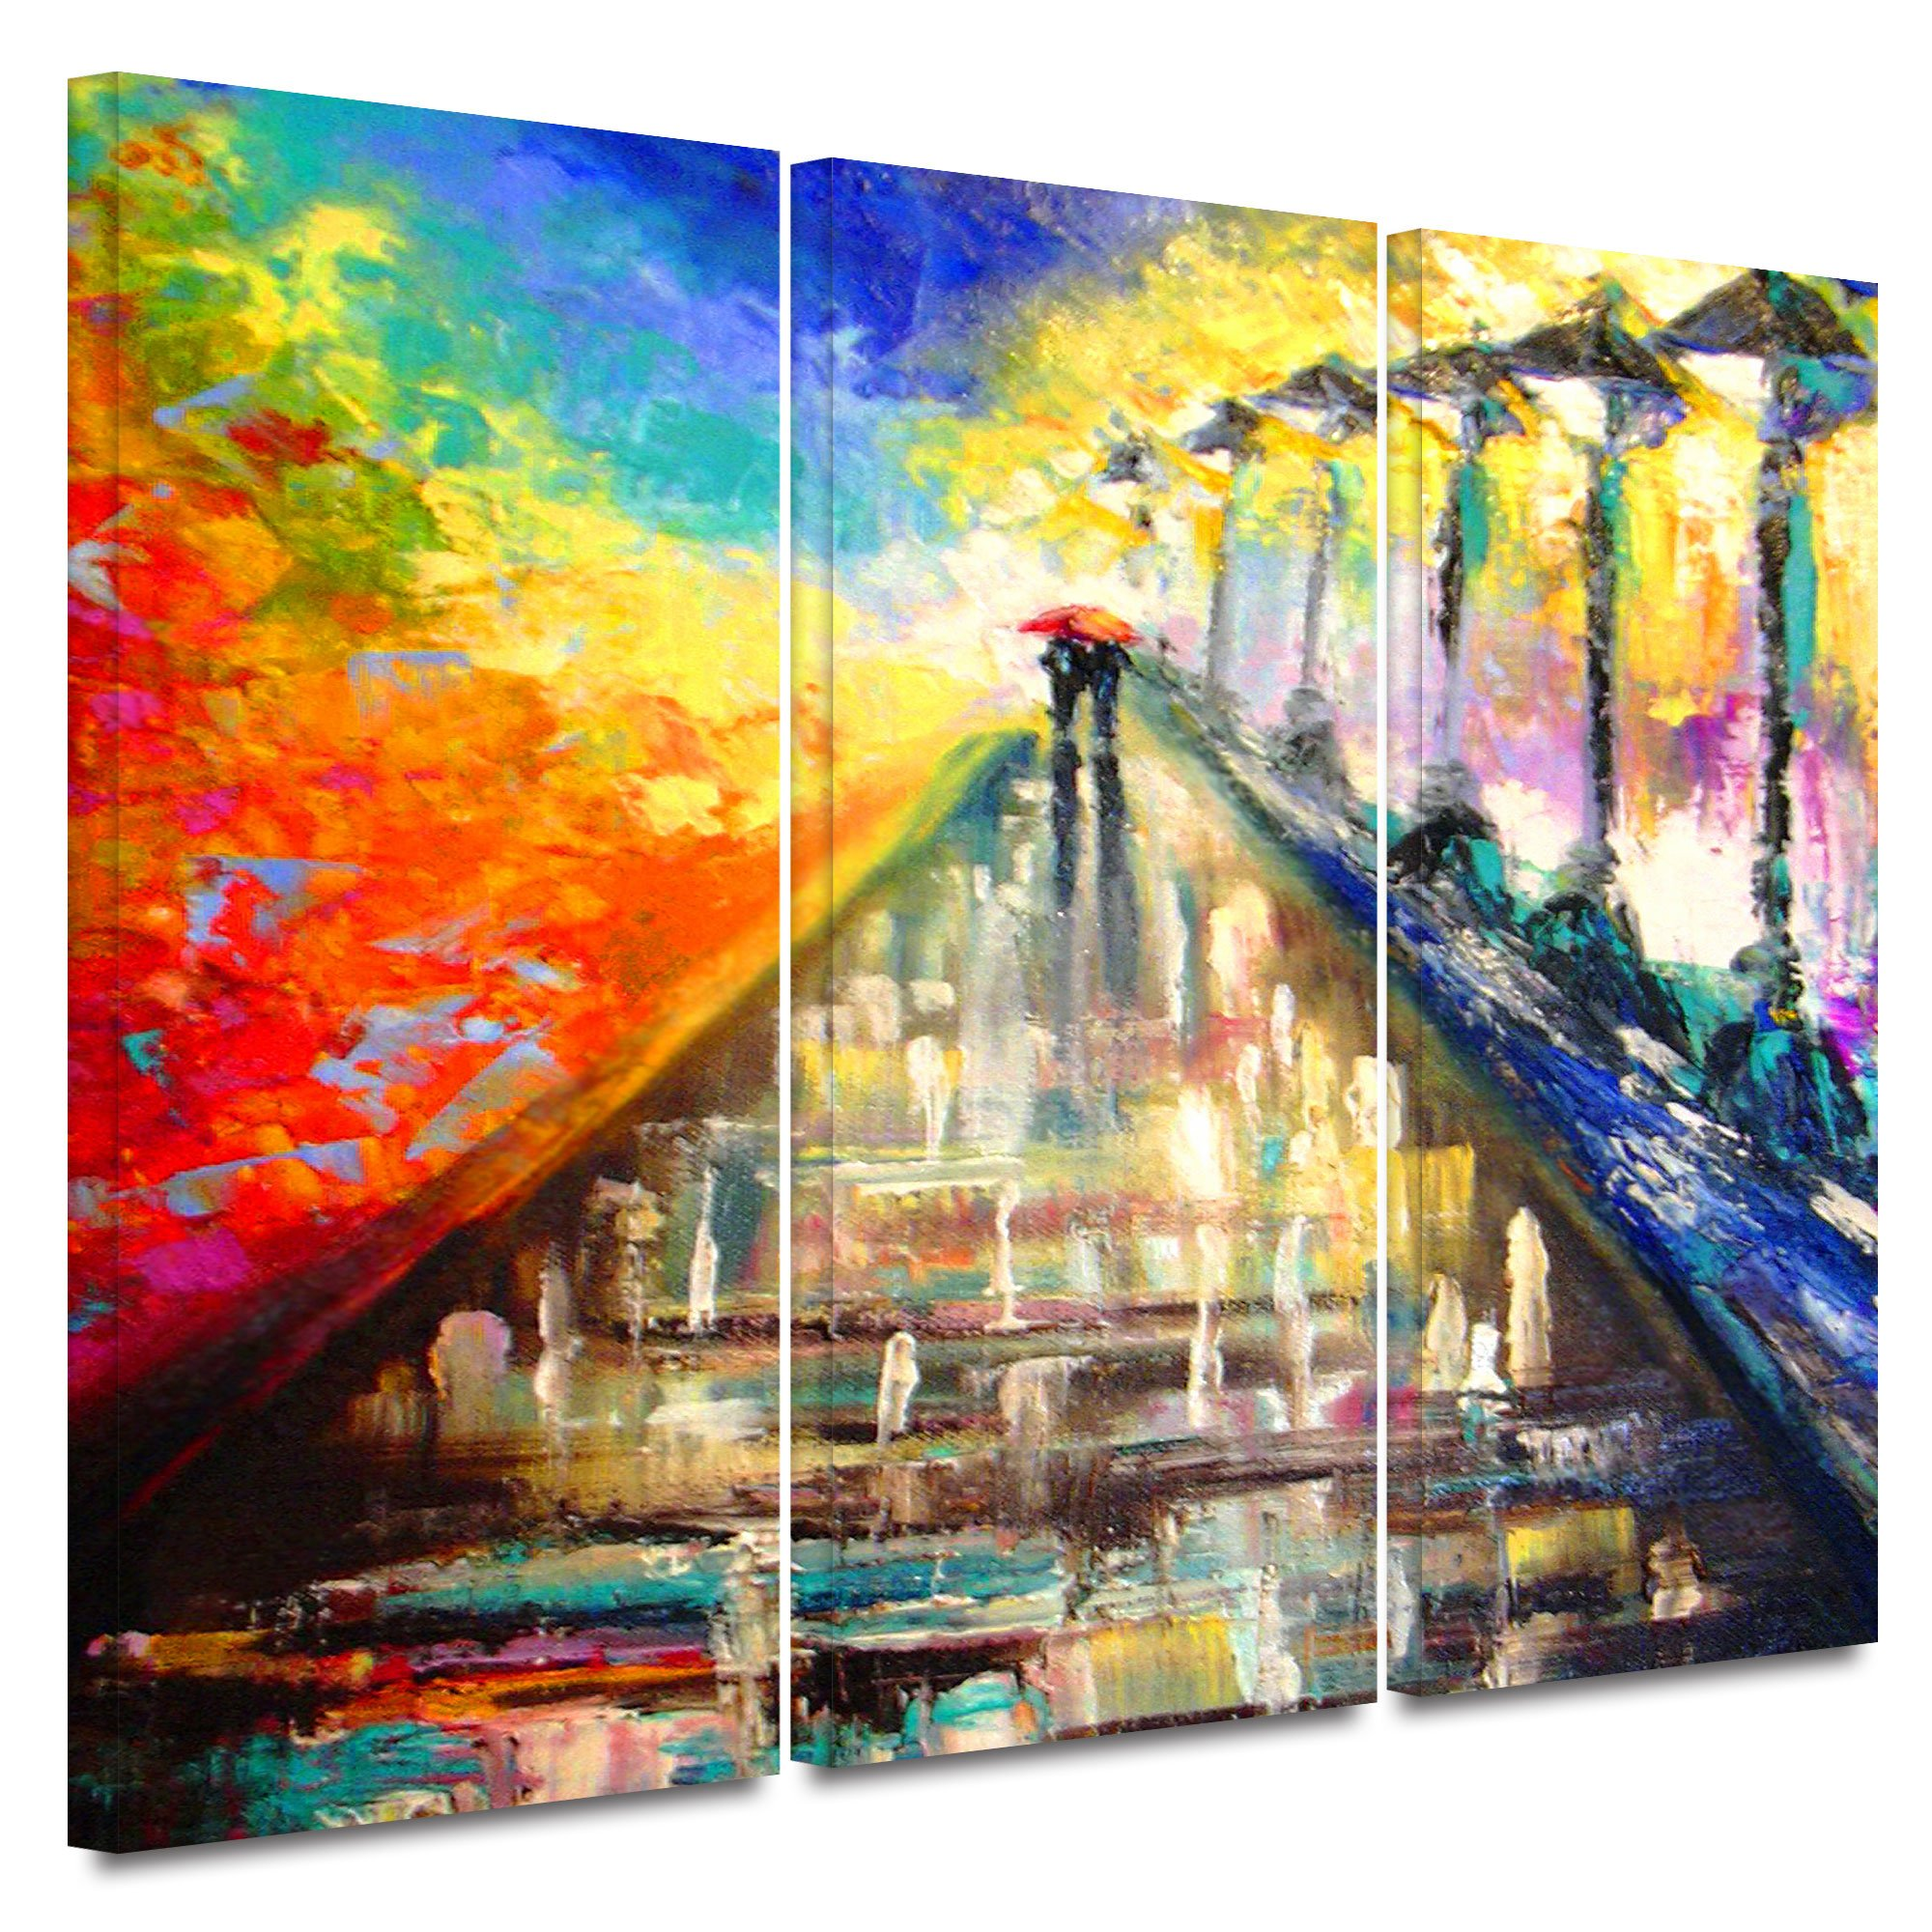 ArtWall Susi Franco 'Rainy Paris Evening' 3-Piece Gallery Wrapped Canvas Artwork, 36 by 54-Inch by Art Wall